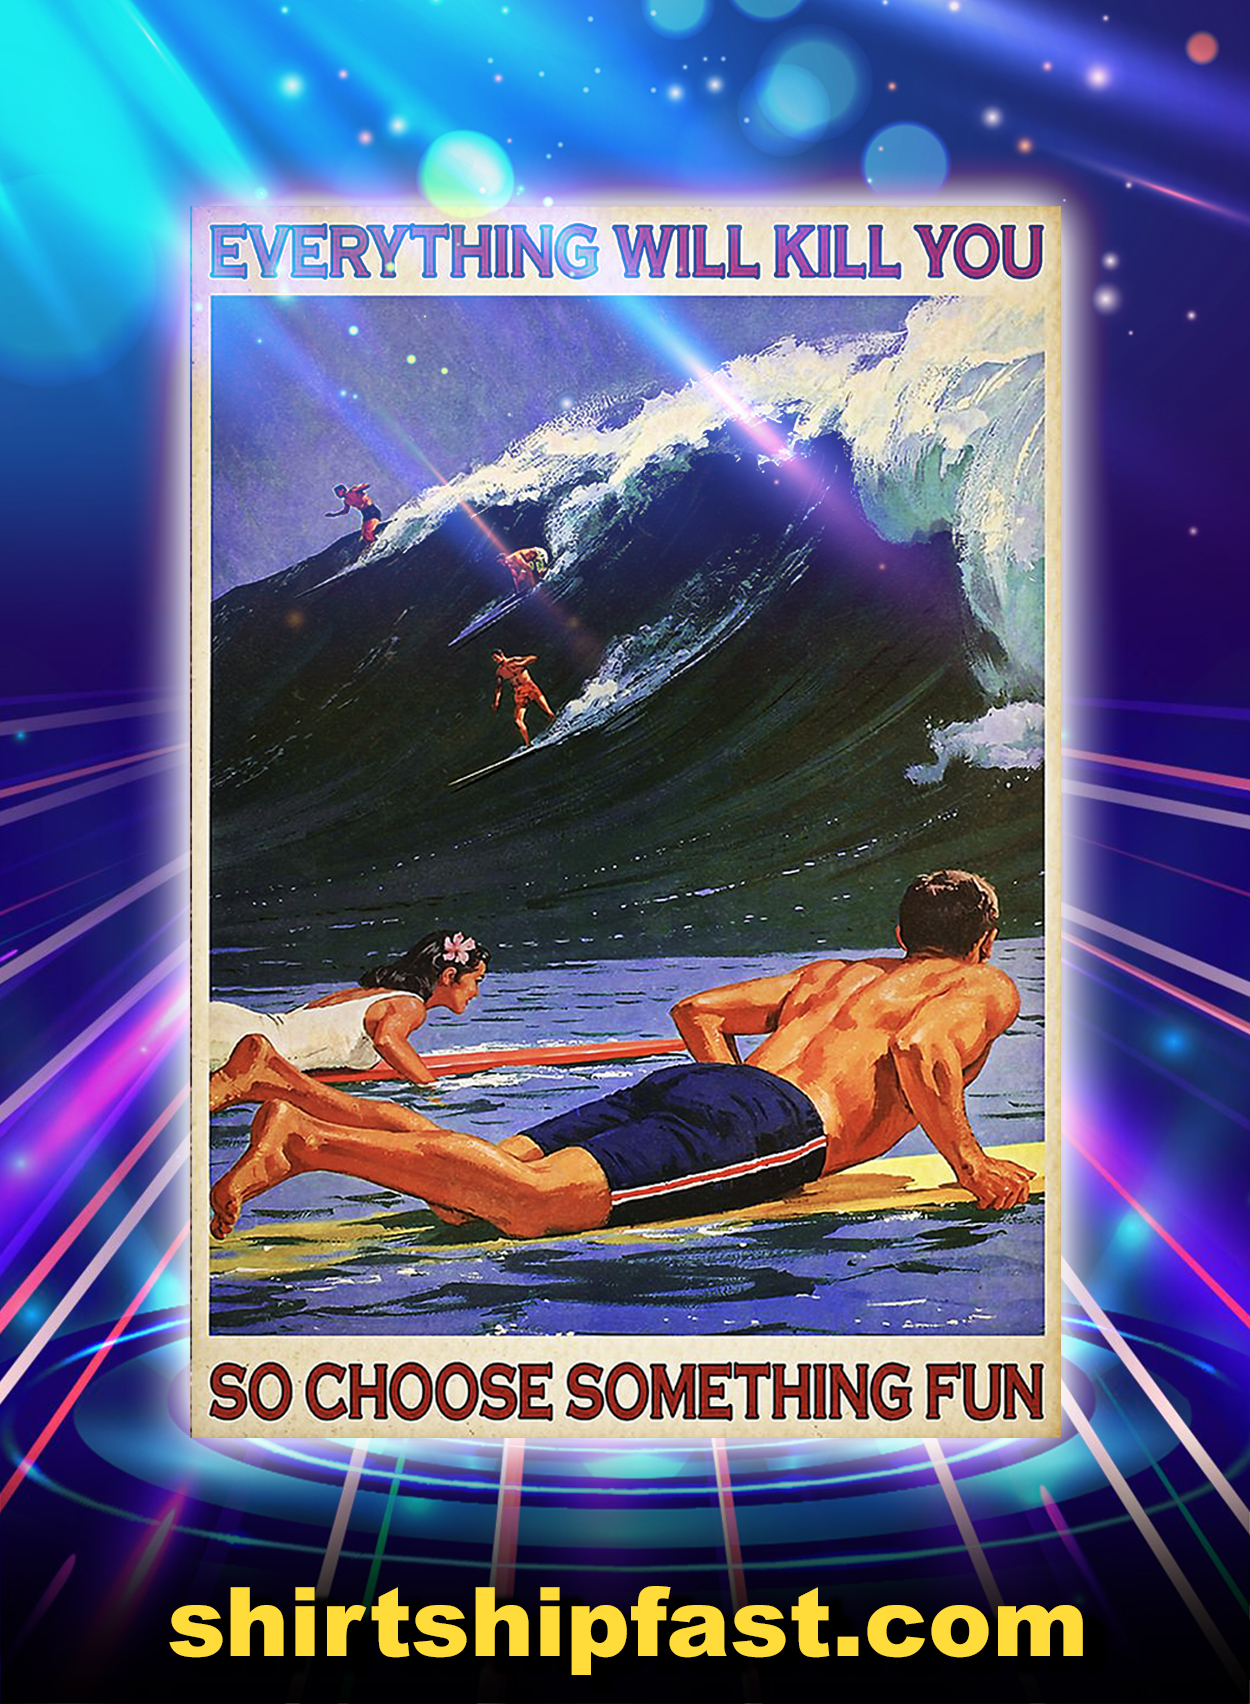 Surfing everything will kill you so choose something fun poster - A2